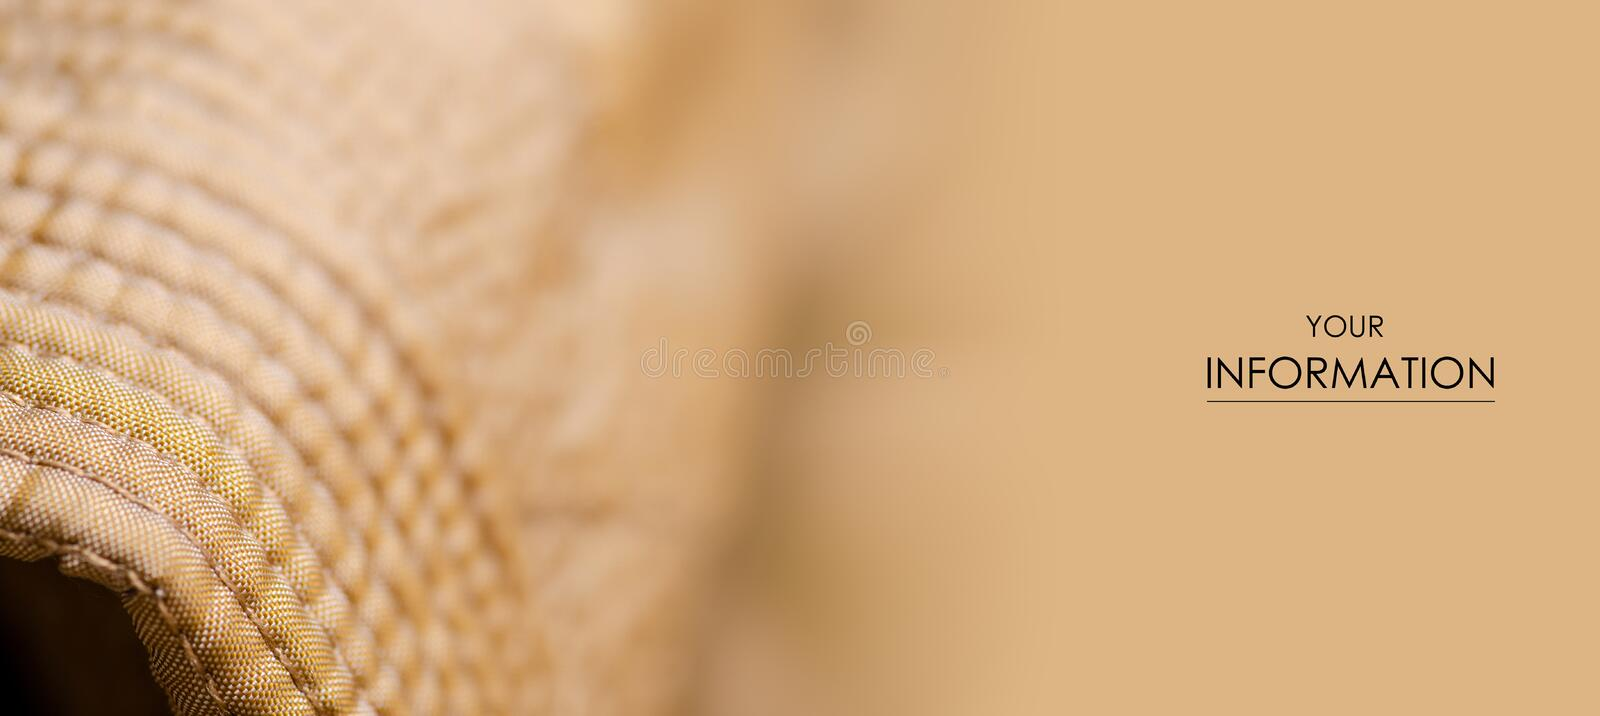 Fabric material textile texture golden seam  blur background. Fabric material textile texture golden seam jacket lining macro pattern blur background royalty free stock images